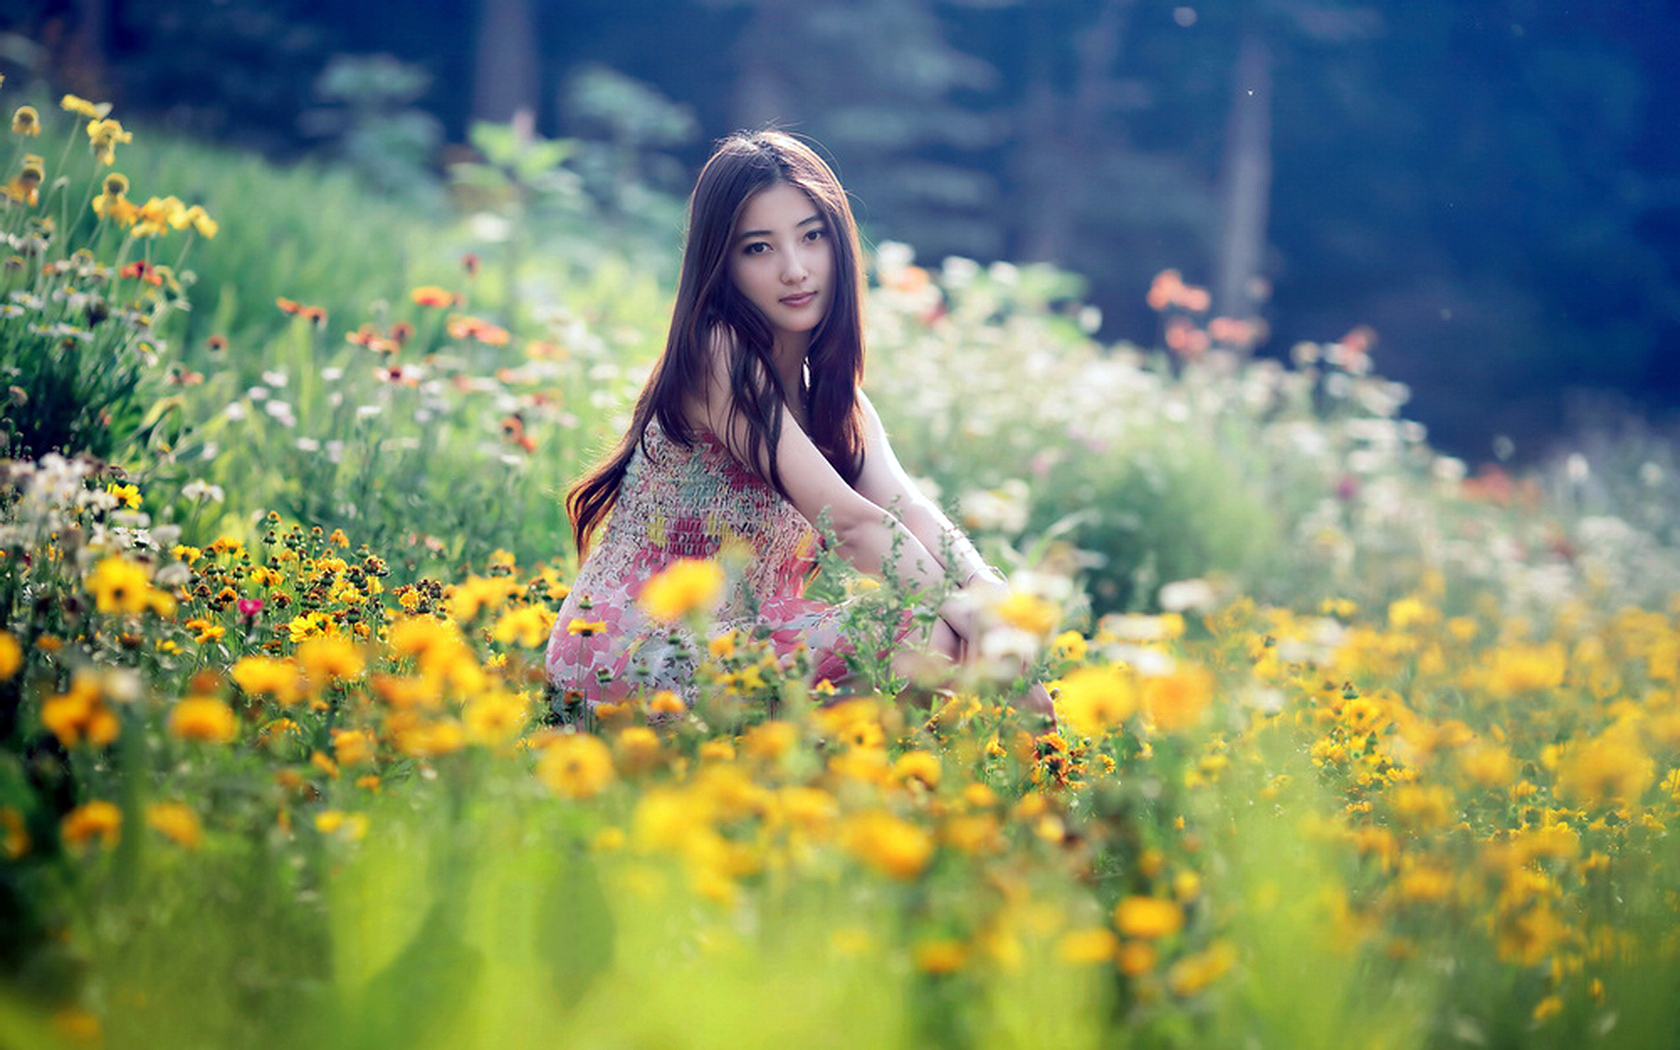 girl in flowery dress sitting among numerous flowers the